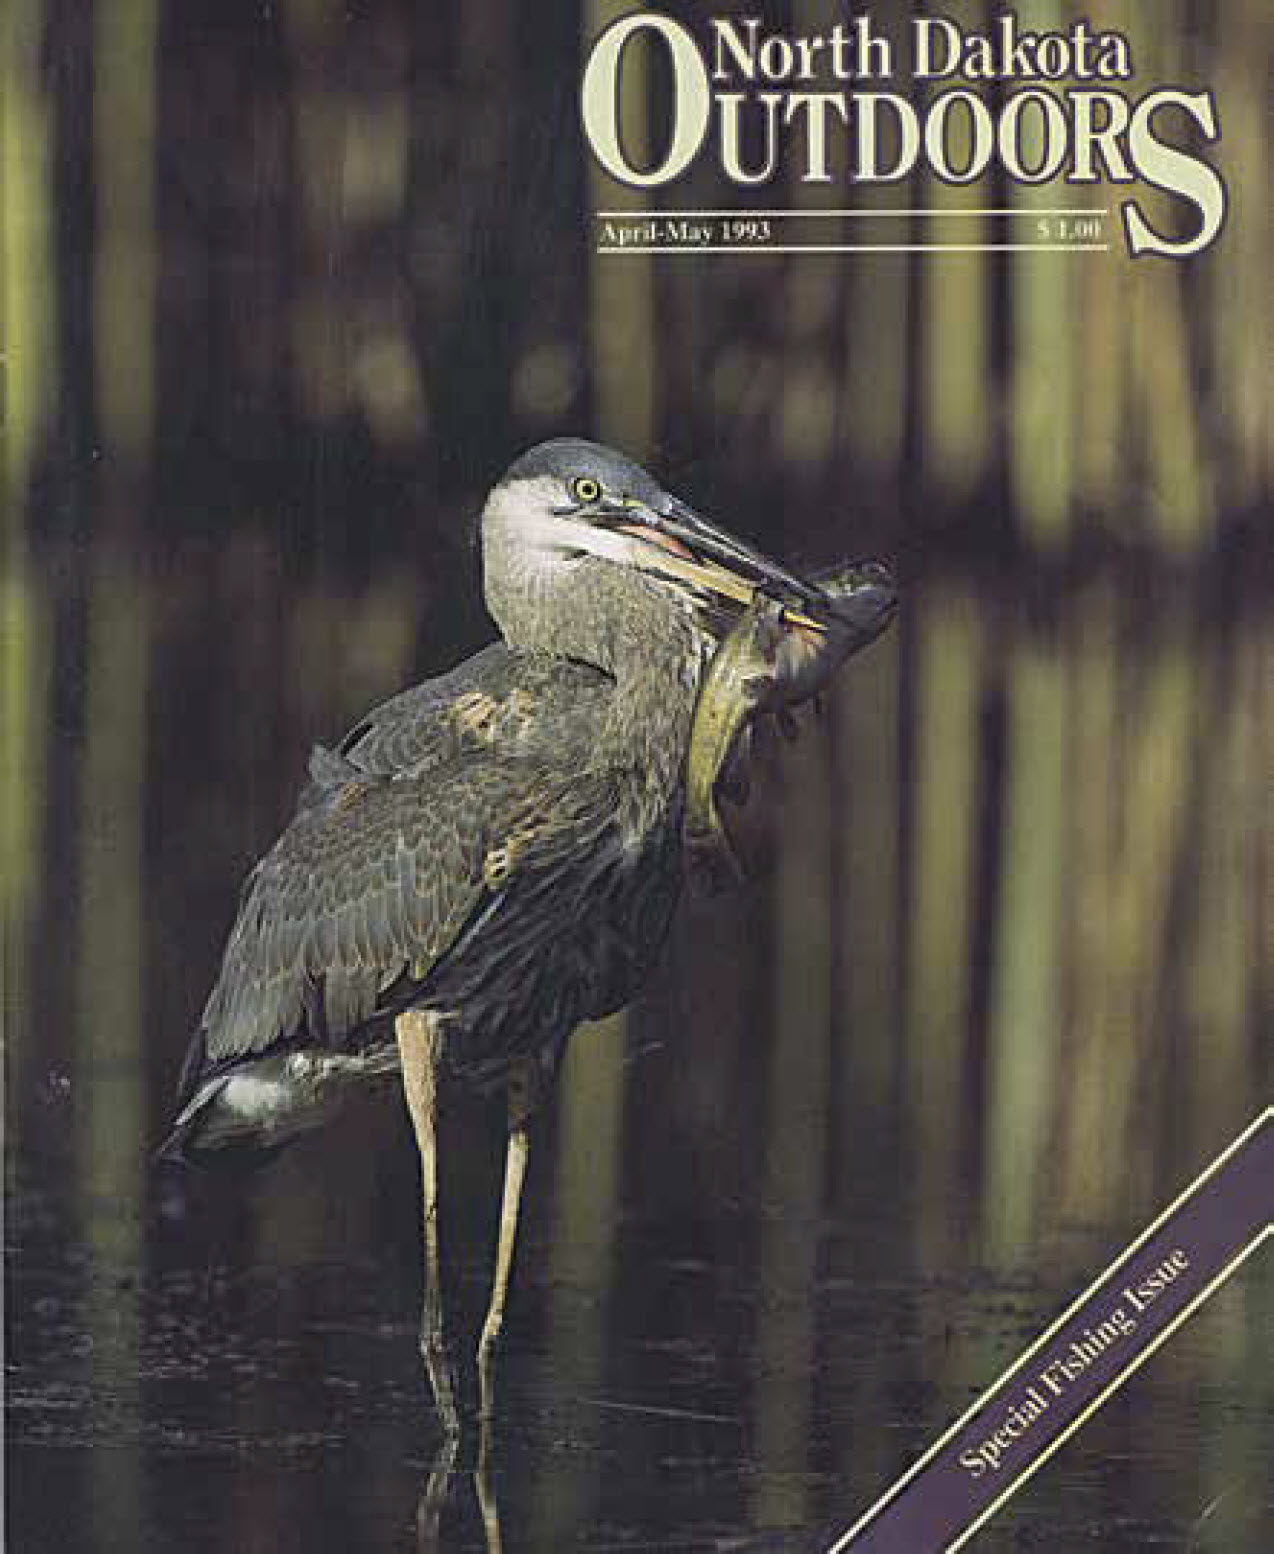 1993 Outdoors cover